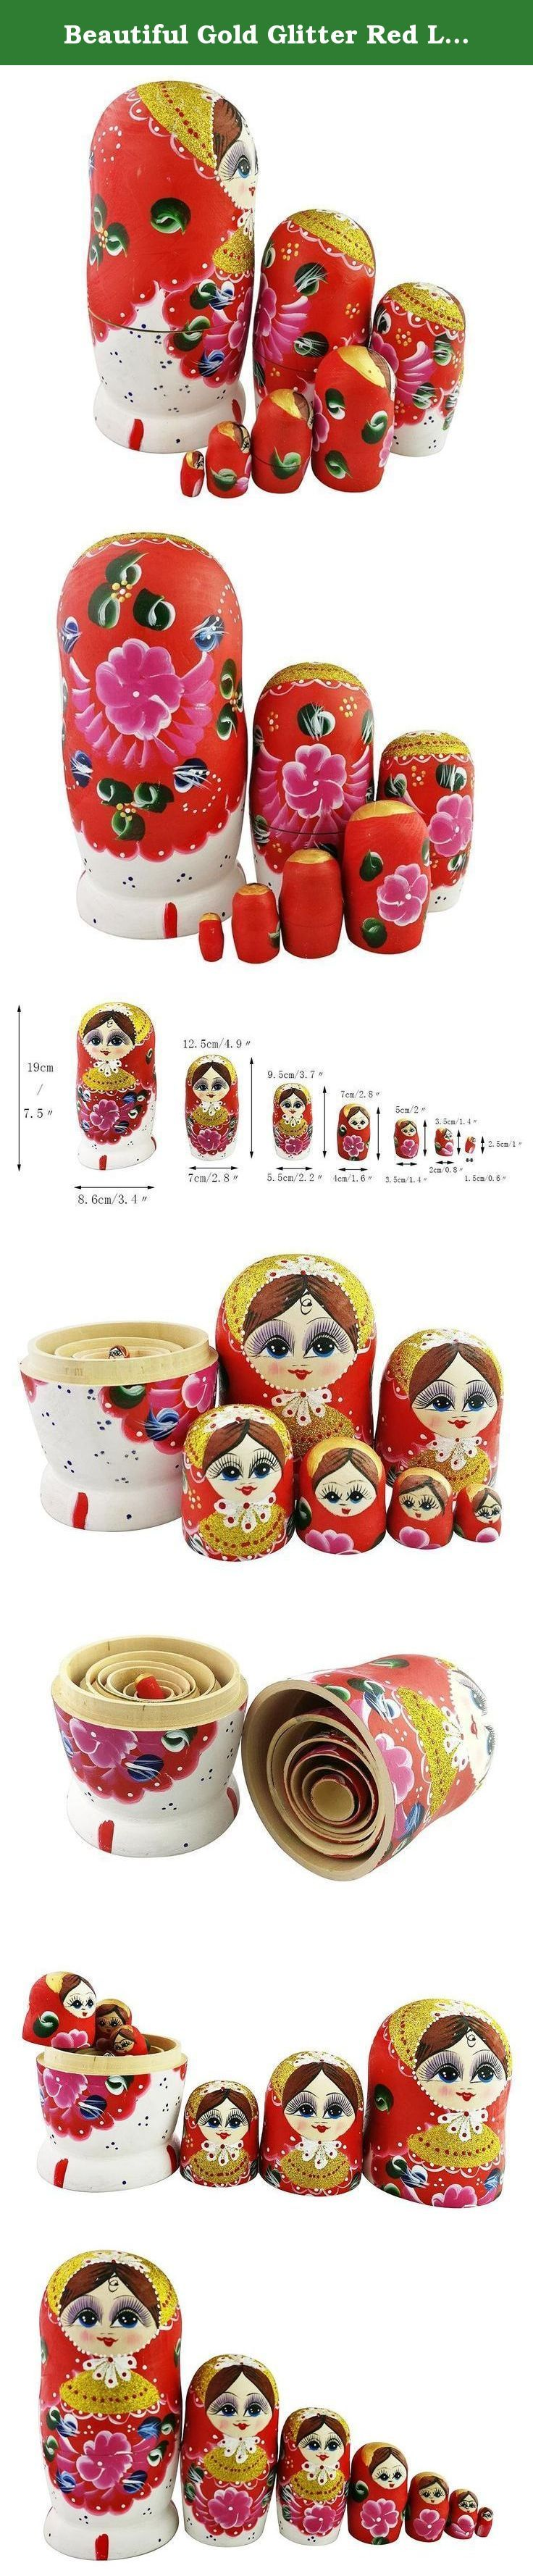 Beautiful Gold Glitter Red Little Girl Flower Pattern Handmade Wooden Russian Nesting Dolls Matryoshka Dolls Set 7 Pieces For Kids Toy Birthday Christmas Gift Home Decoration. Introduction: Have you been attracted by this surprise toy? It is a set of 7 wooden dolls of decreasing size placed one inside another to appear as one. It could be also called the first ever surprise toy, invented 123 years ago in Russia. In russian words, the nesting dolls you are viewing is Matryoshka. They are…